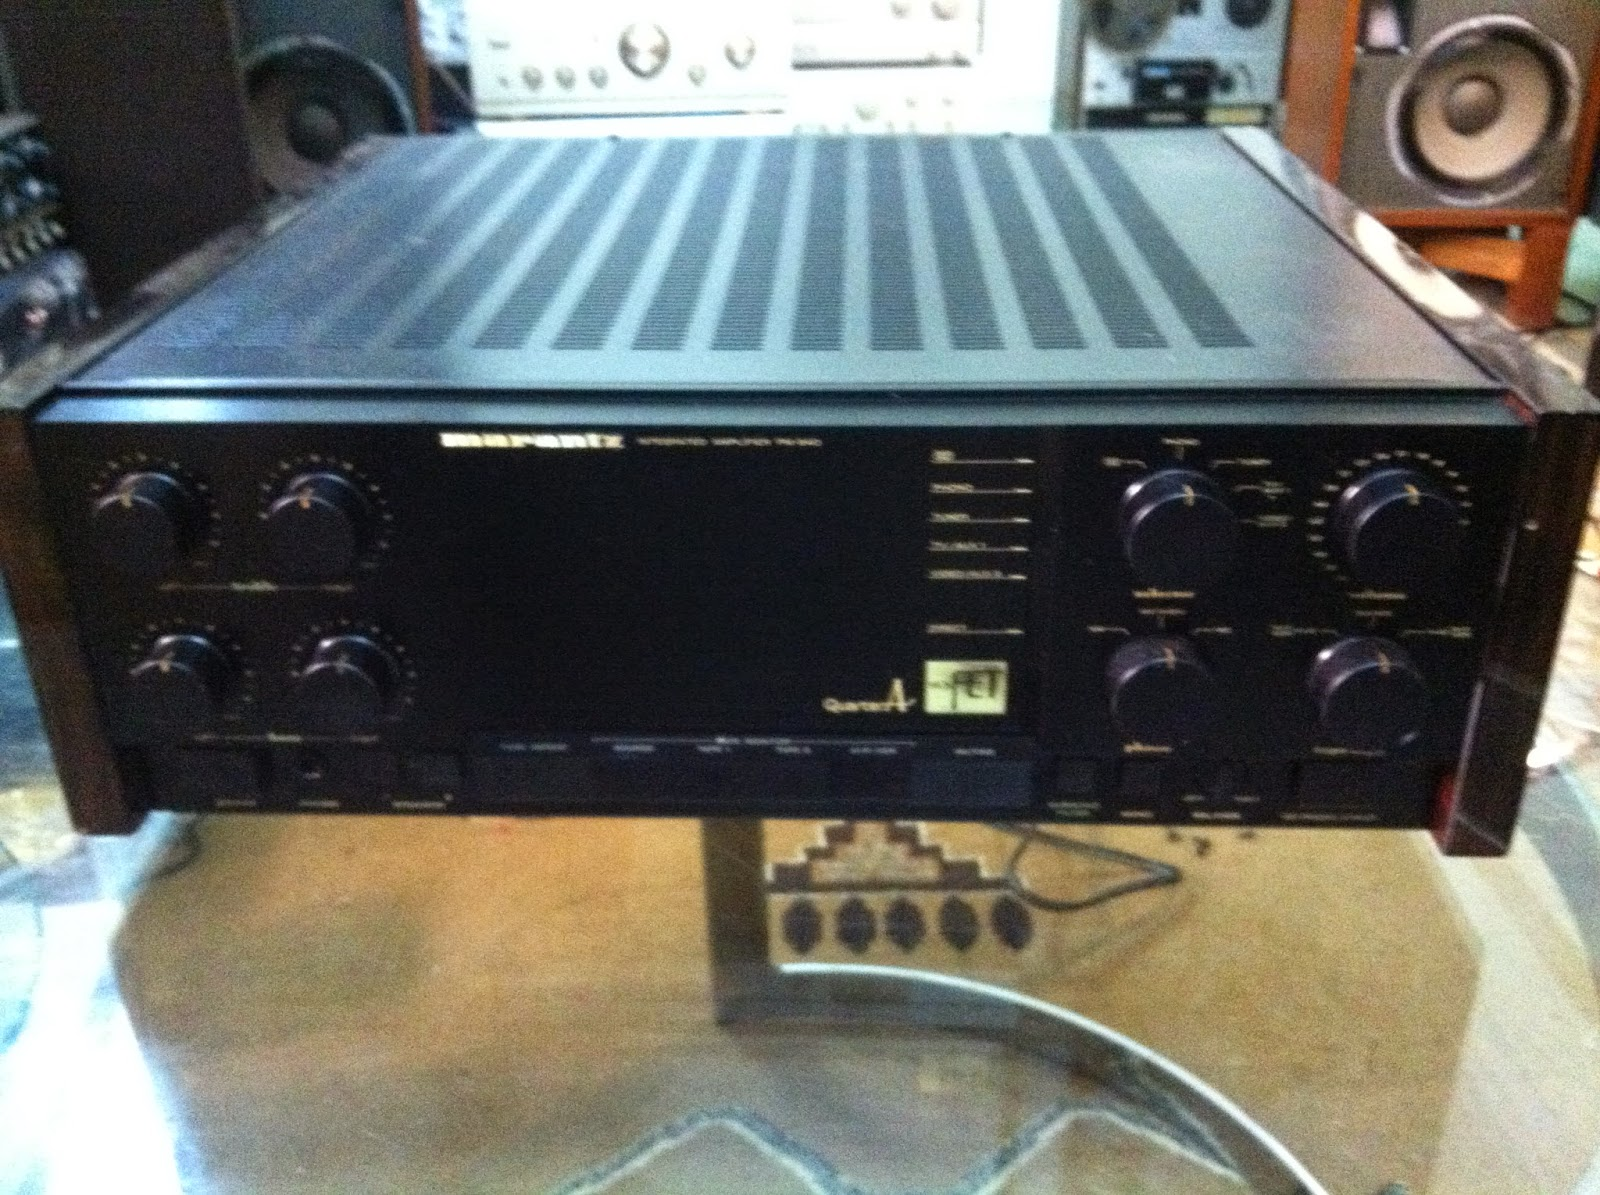 Amply Marantz PM-84D  - Made in Japan